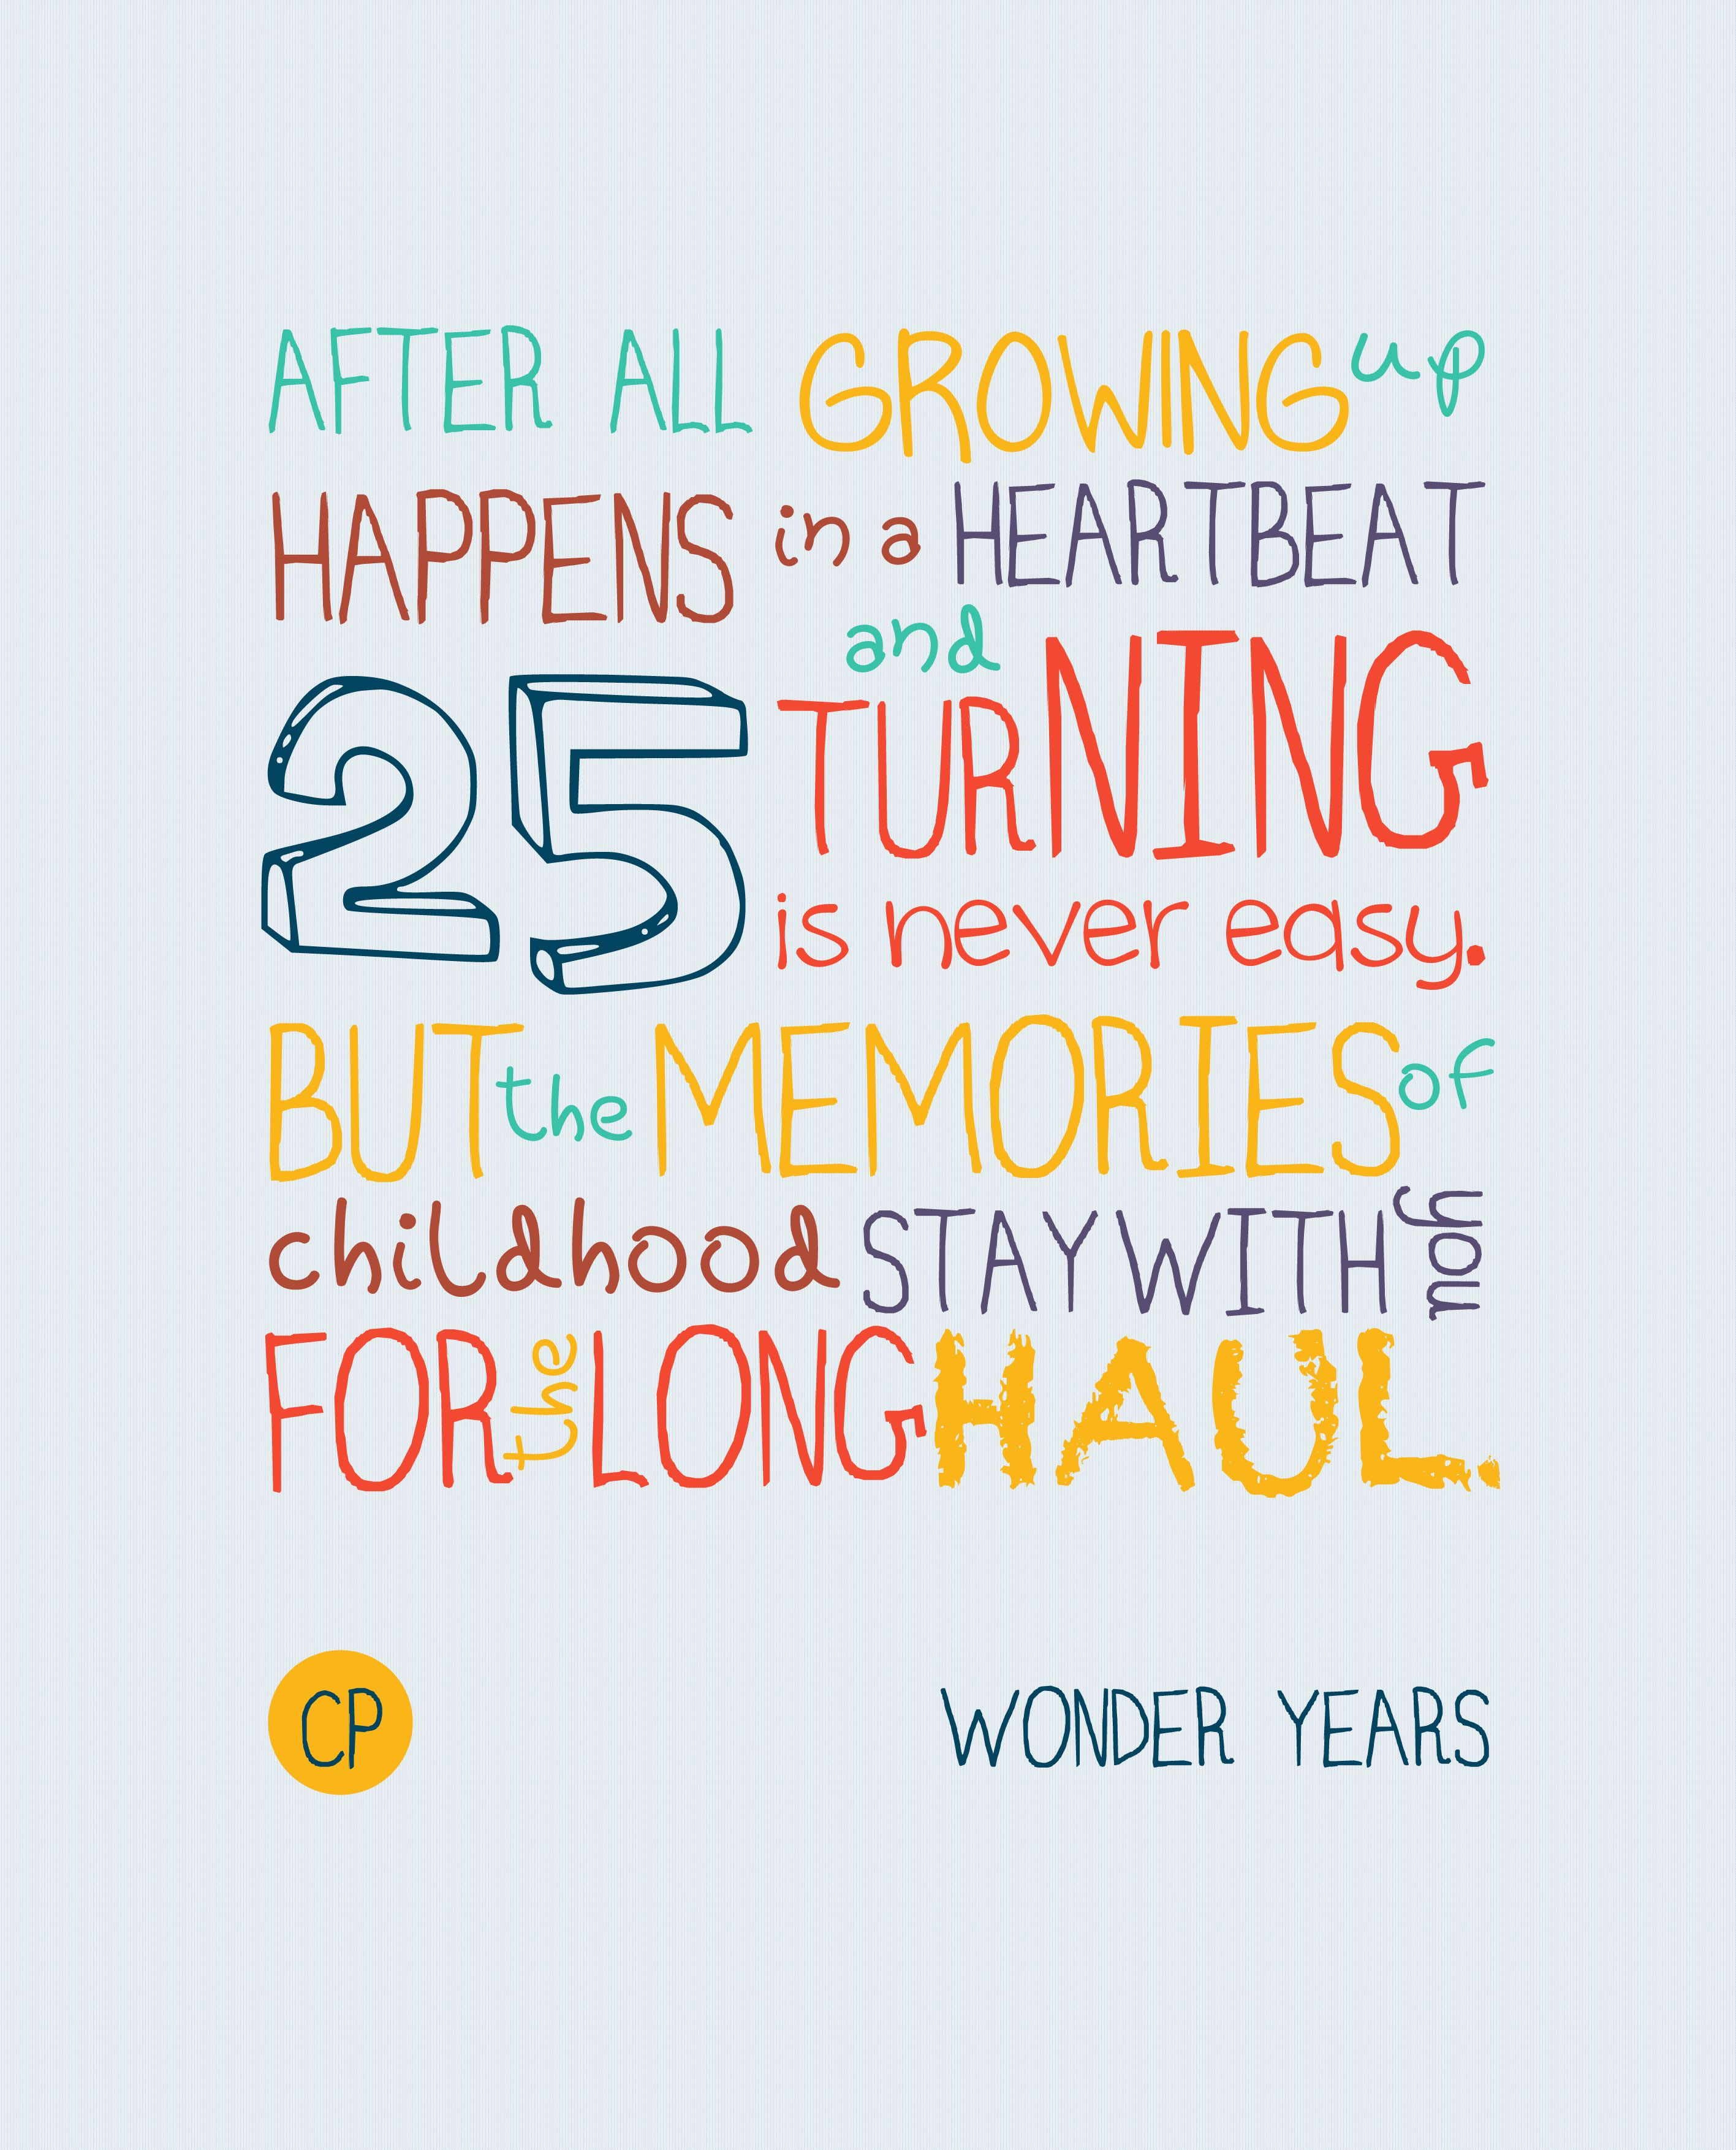 25th Birthday Wishes Funny : birthday, wishes, funny, Turning, Never, Happy, Birthday, Quotes,, Quotes, Daughter